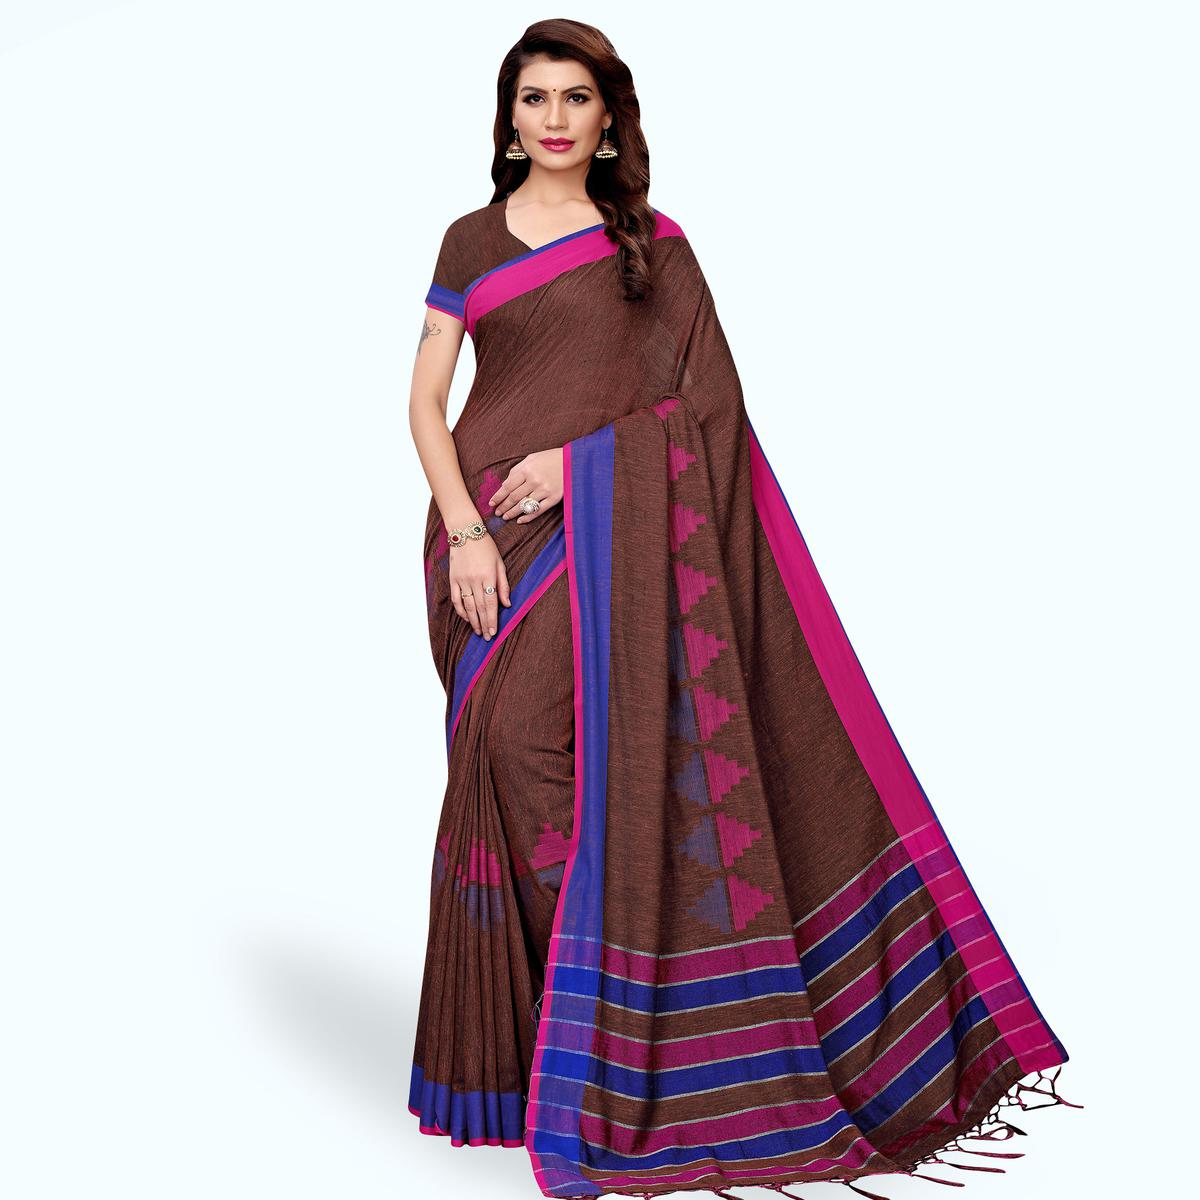 Eye-catching Brown Colored Casual Printed Wear Linen Saree